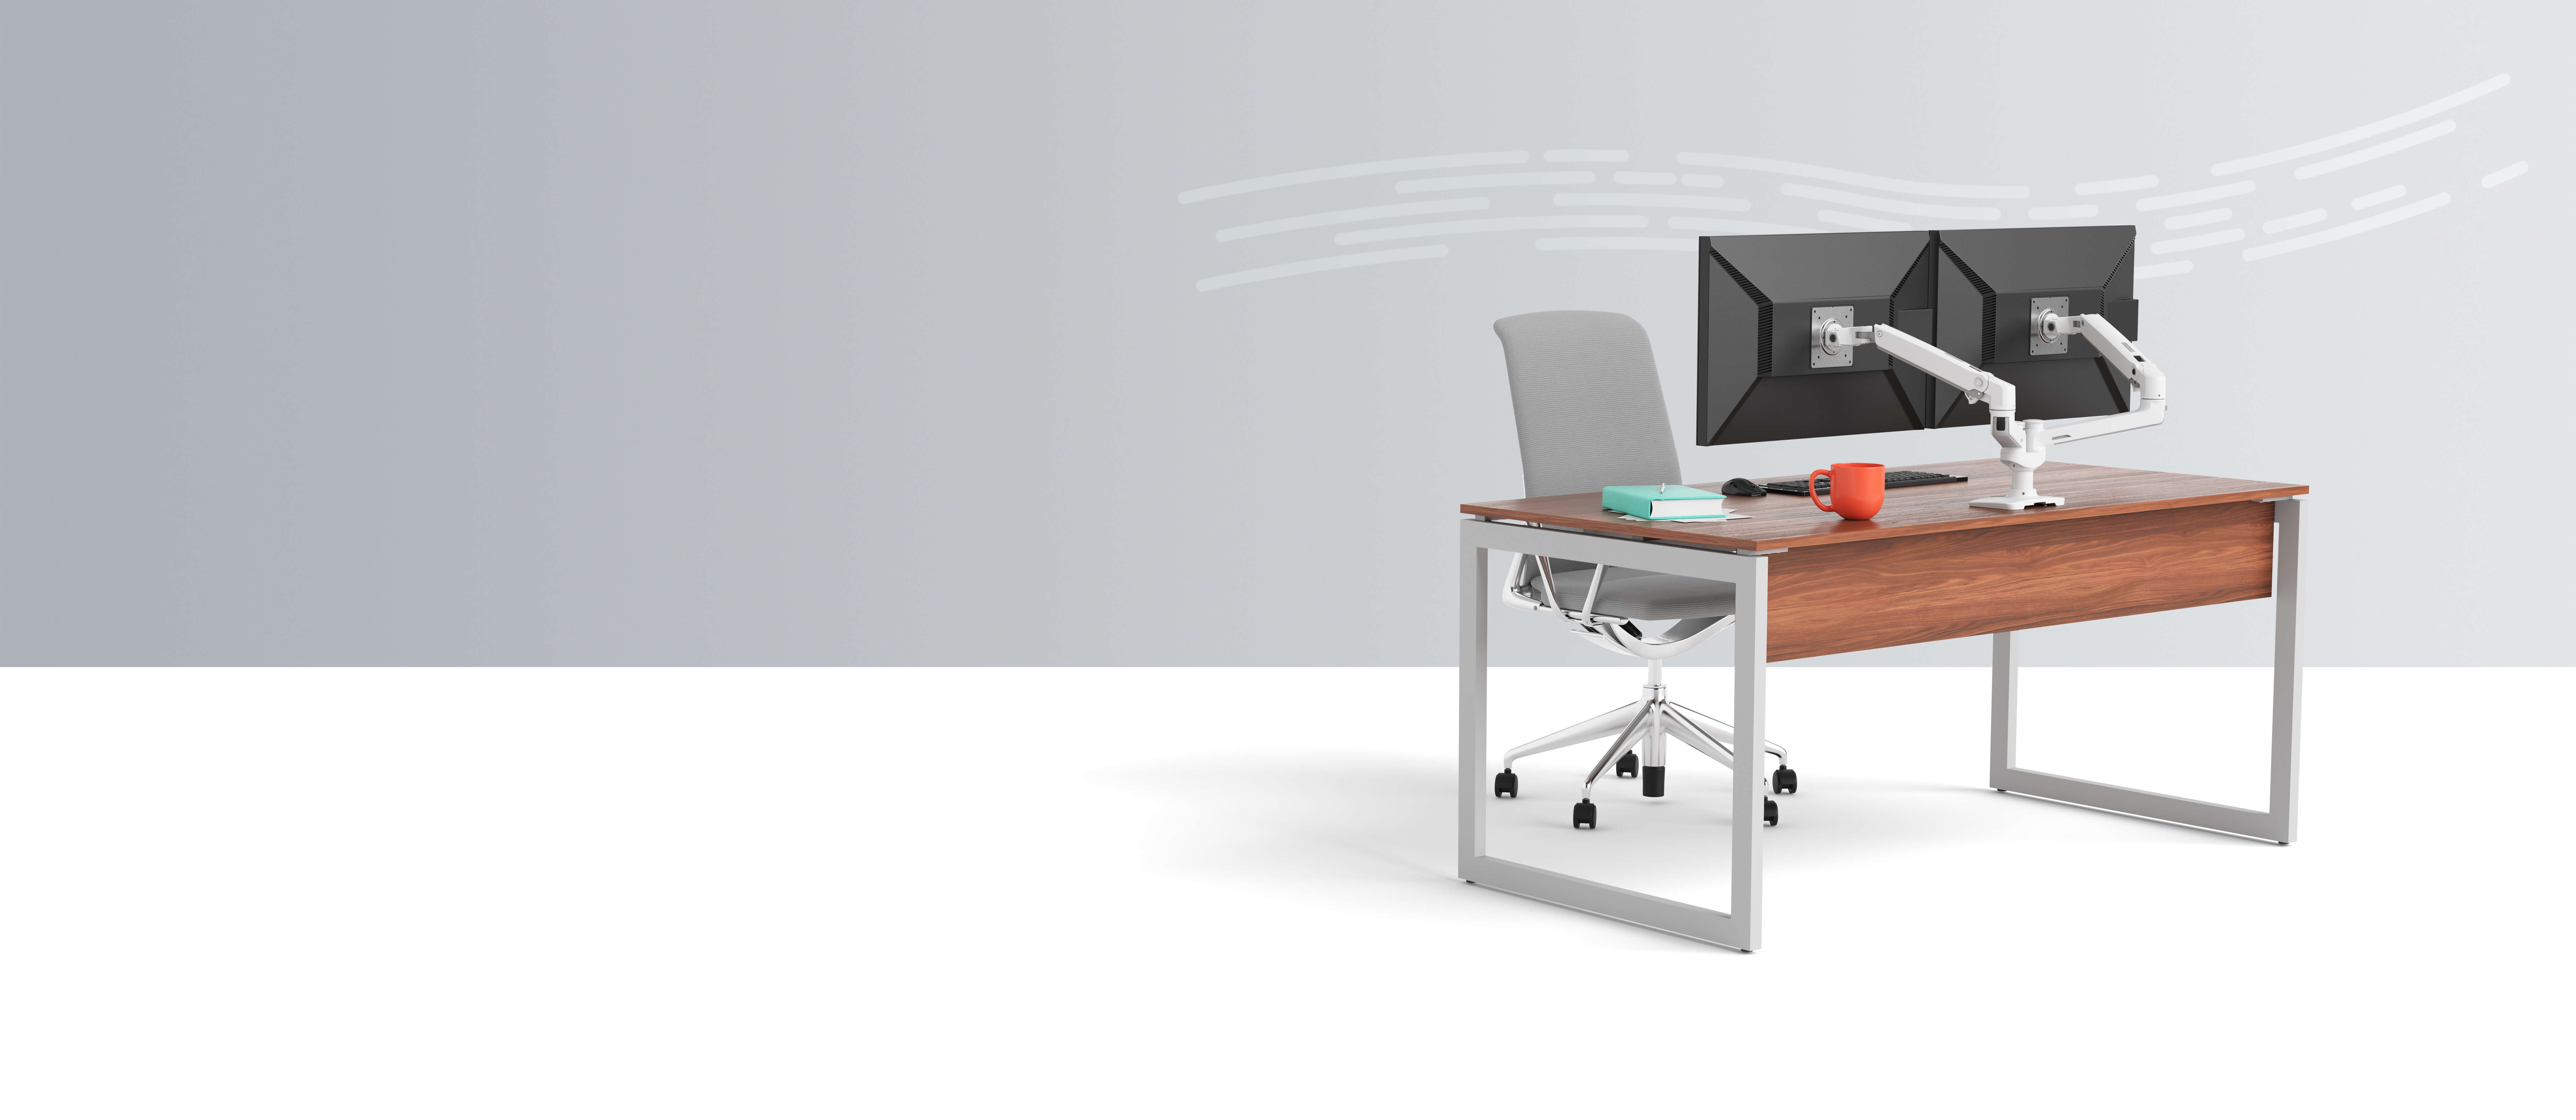 Desk with gray chair